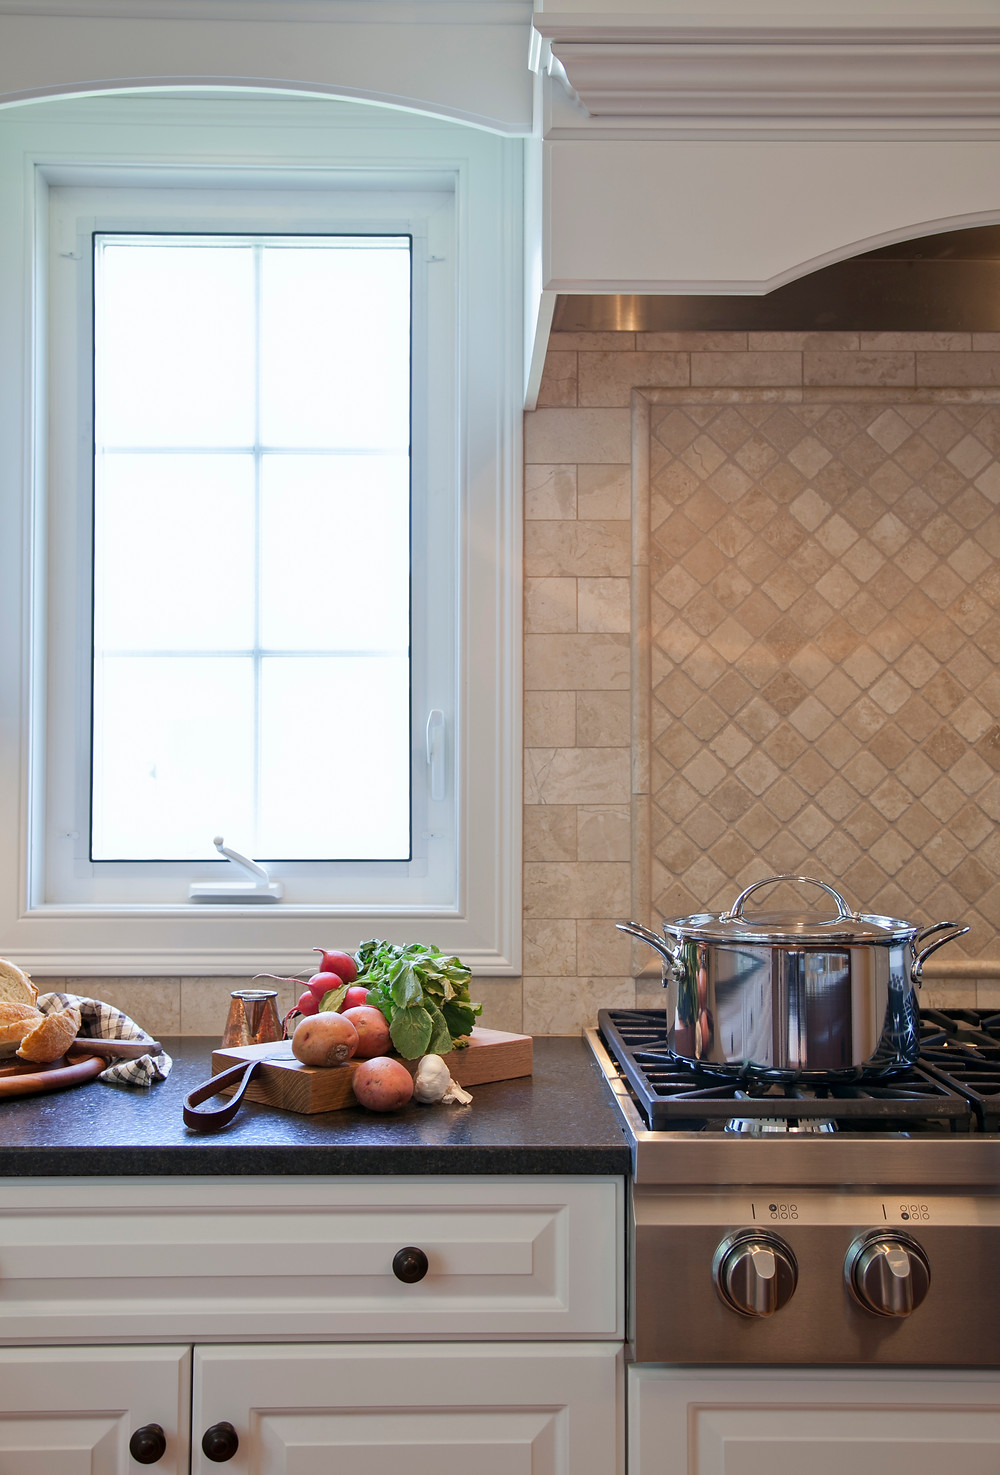 White kitchen with soup cooking on gas cooktop